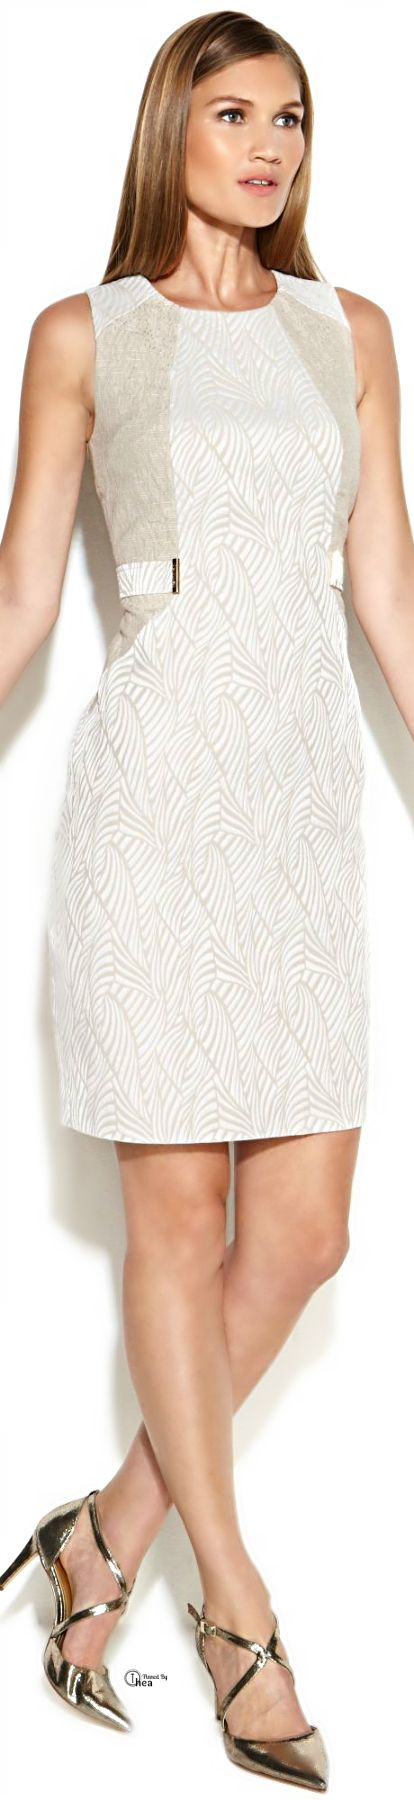 Calvin Klein White + Metallic Sheath Dress //